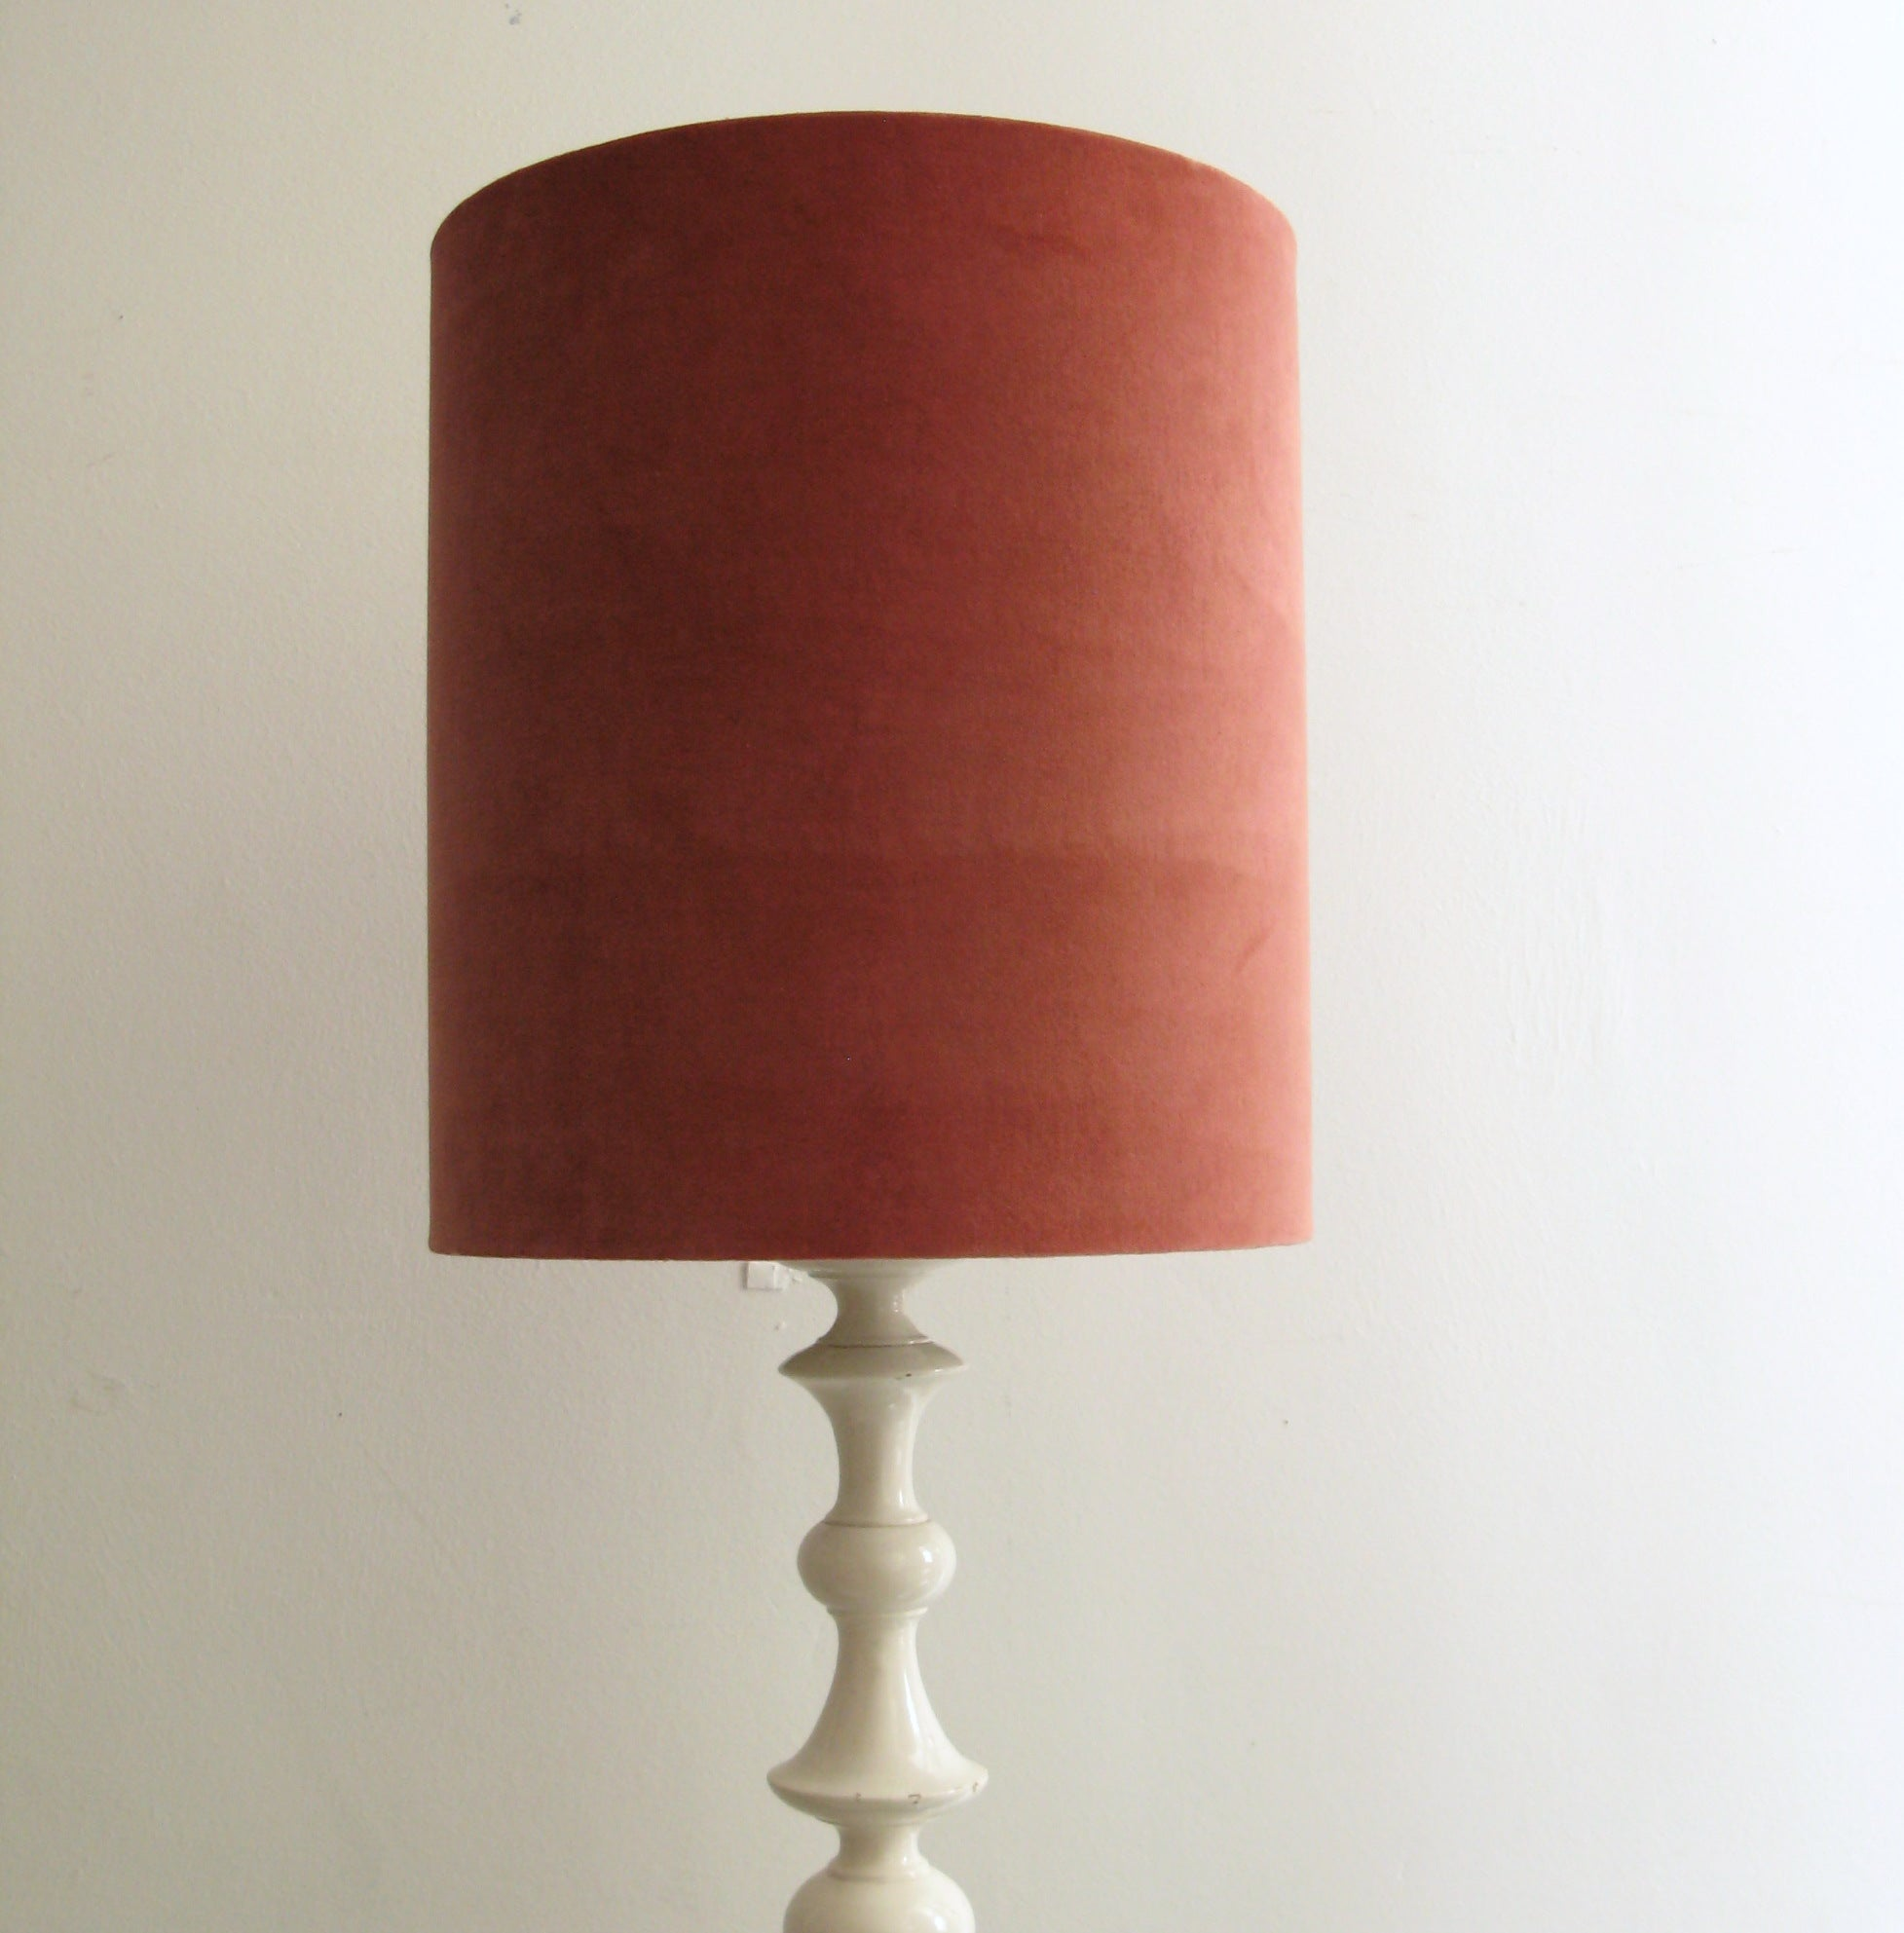 Drum lamp shades cheap drum shade lighting ebay with excellent drum linen lamp shade white - Cool lamp shade ...